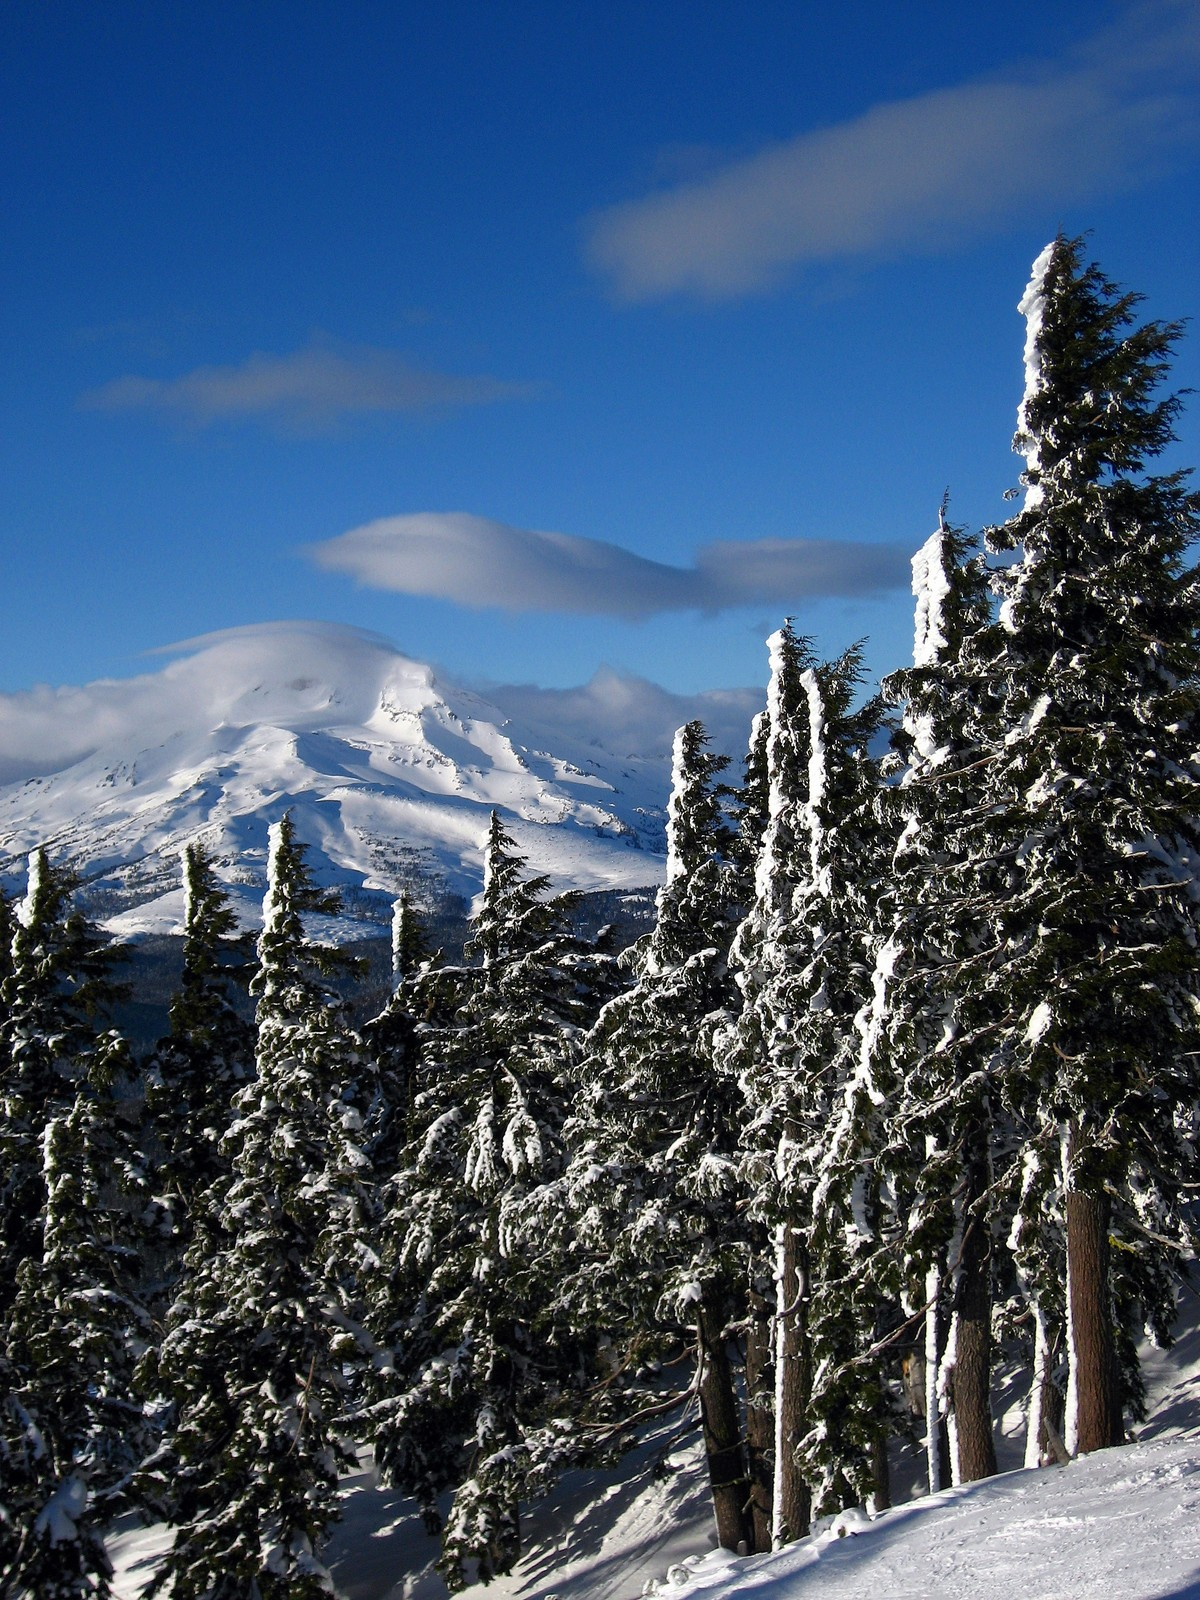 South Sister from Mt. Bachelor Ski Resort